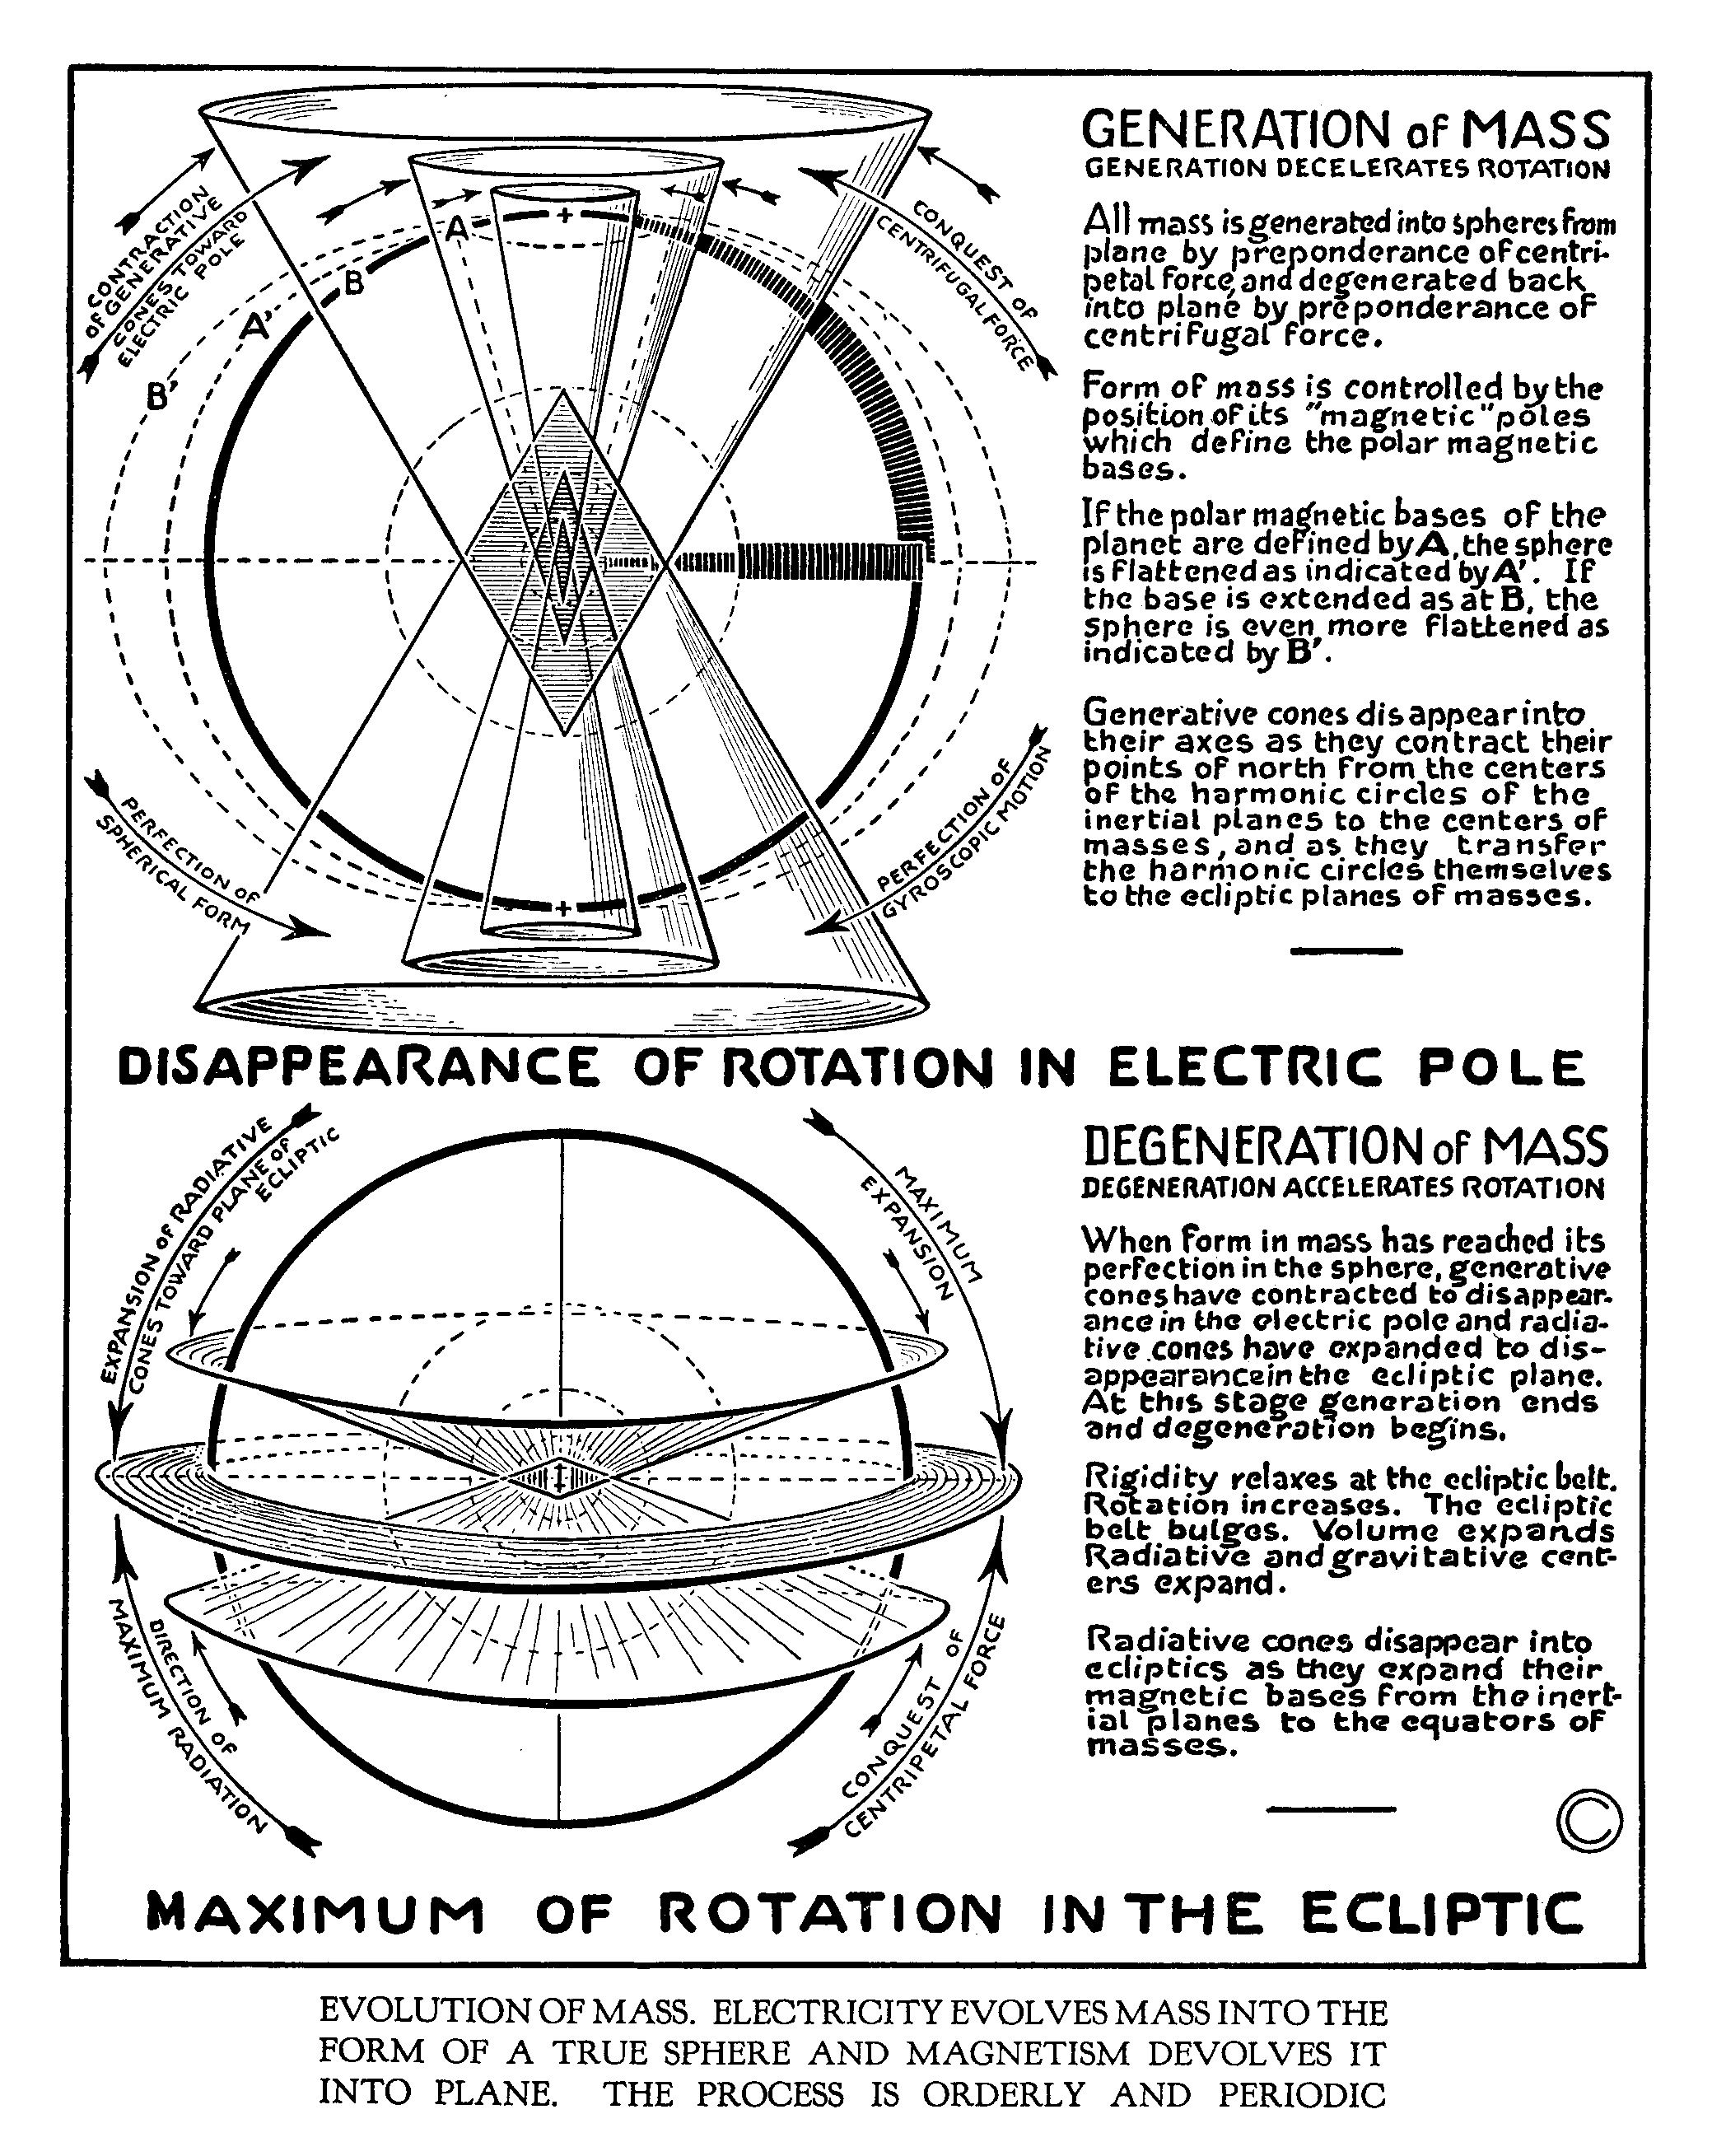 Electricity evolves mass into spheres cosas ocultas pinterest electricity evolves mass into spheres urtaz Images